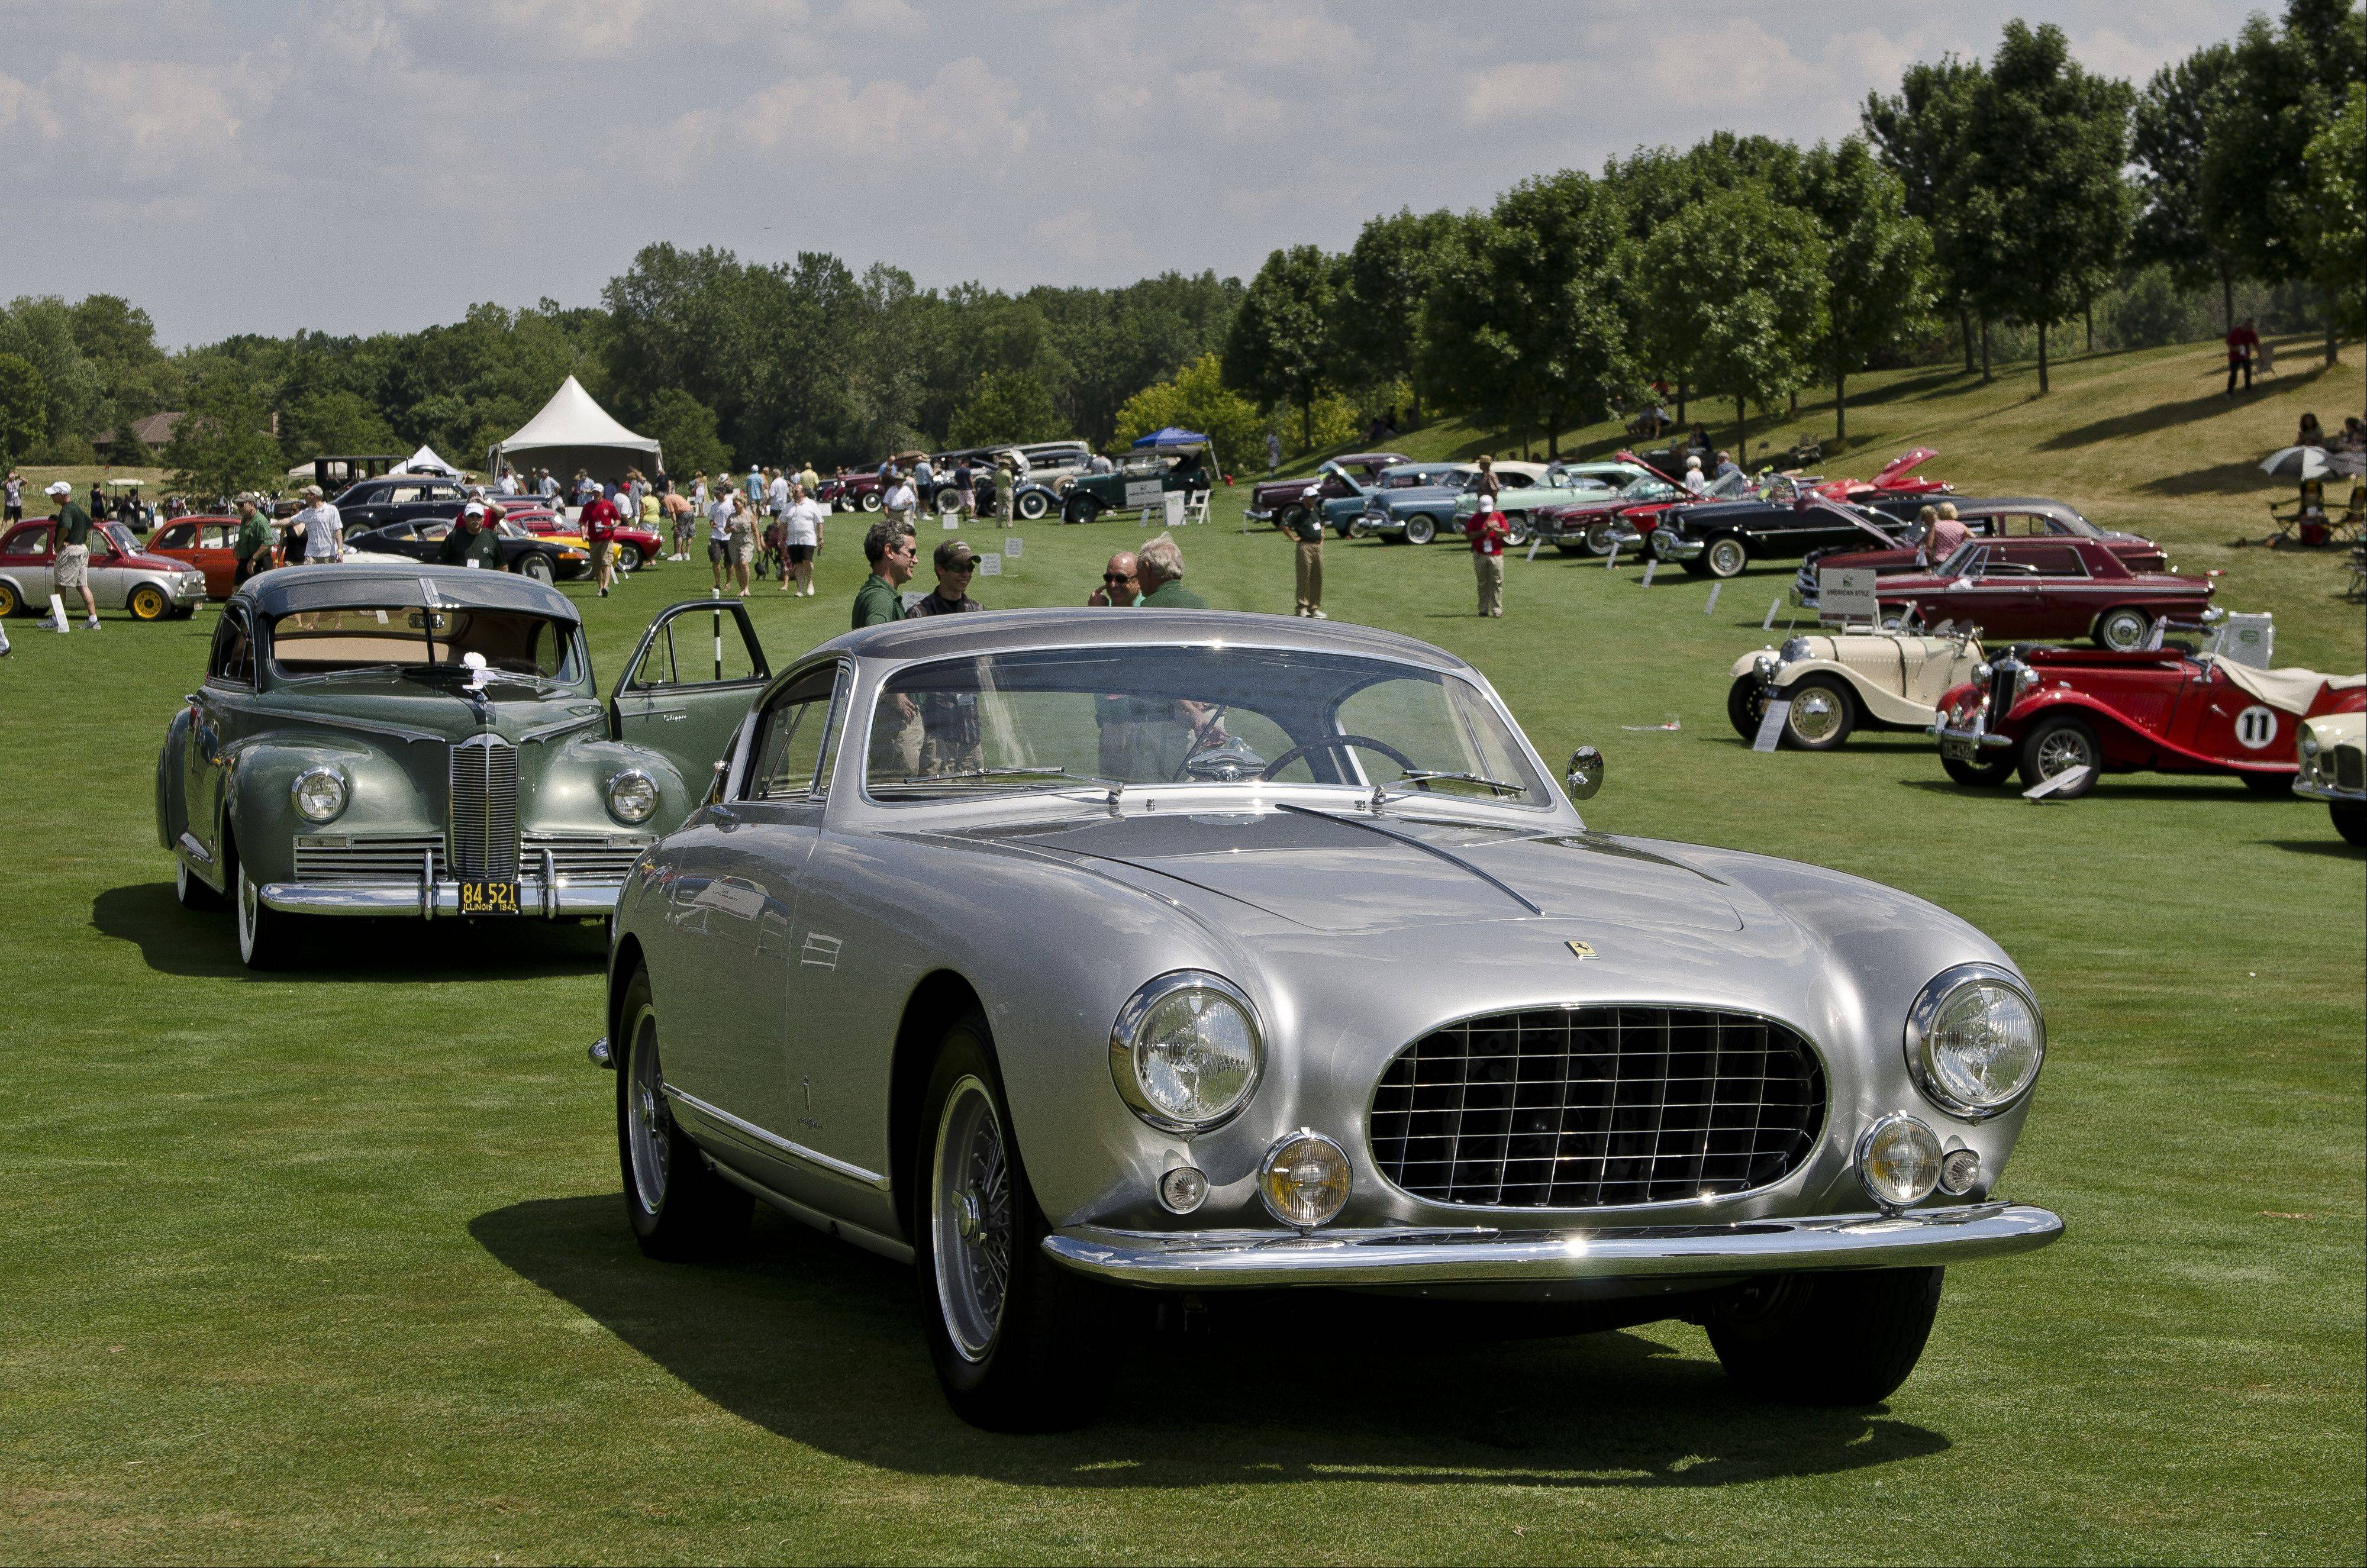 The Barrington Concurs d'Elegance returns on Sunday, July 14.